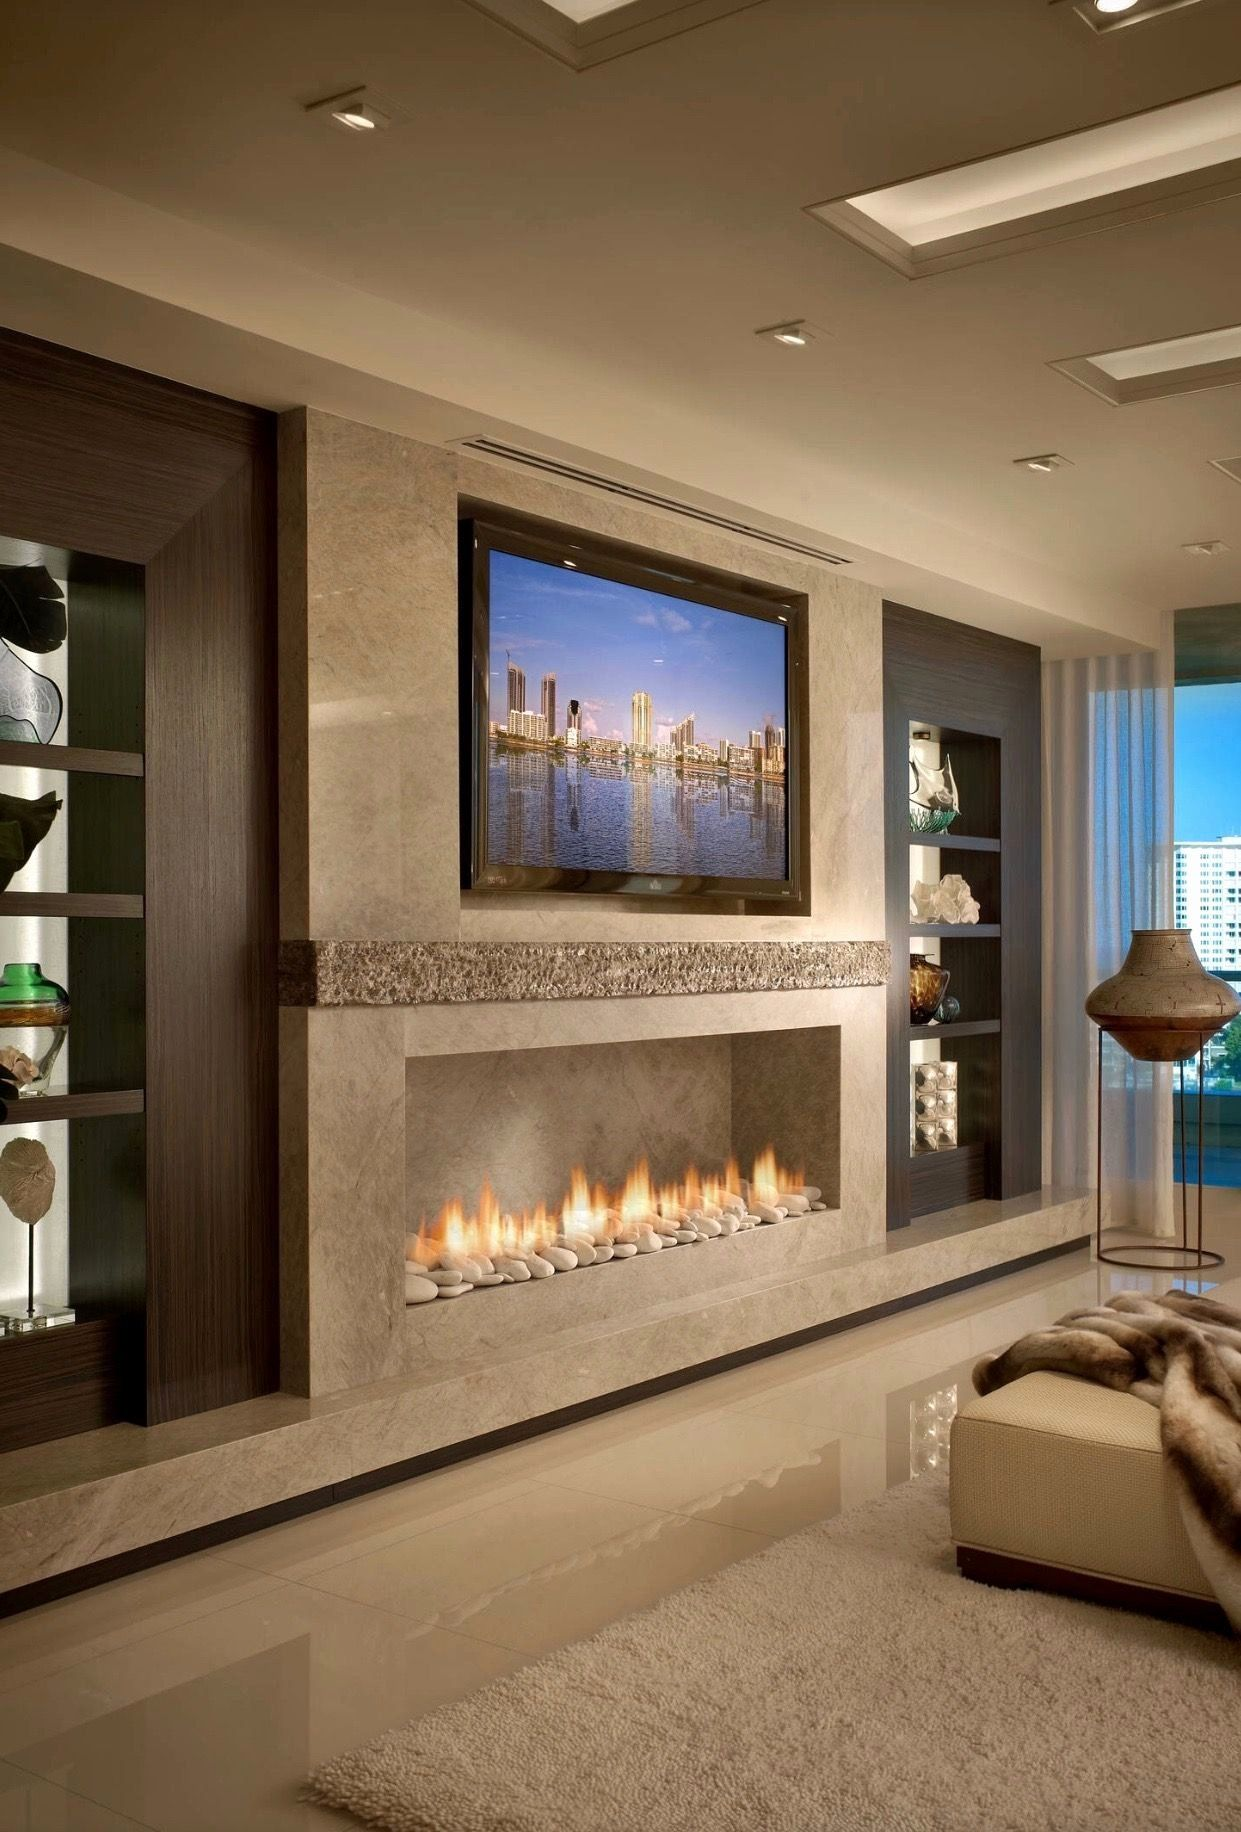 Living Room With Fireplace And Tv On Different Walls Luxury Fd6cd8bb48e8a5b73bda8b1b40ffa240 1 2 Luxury Living Room Fireplace Modern Design Trendy Living Rooms